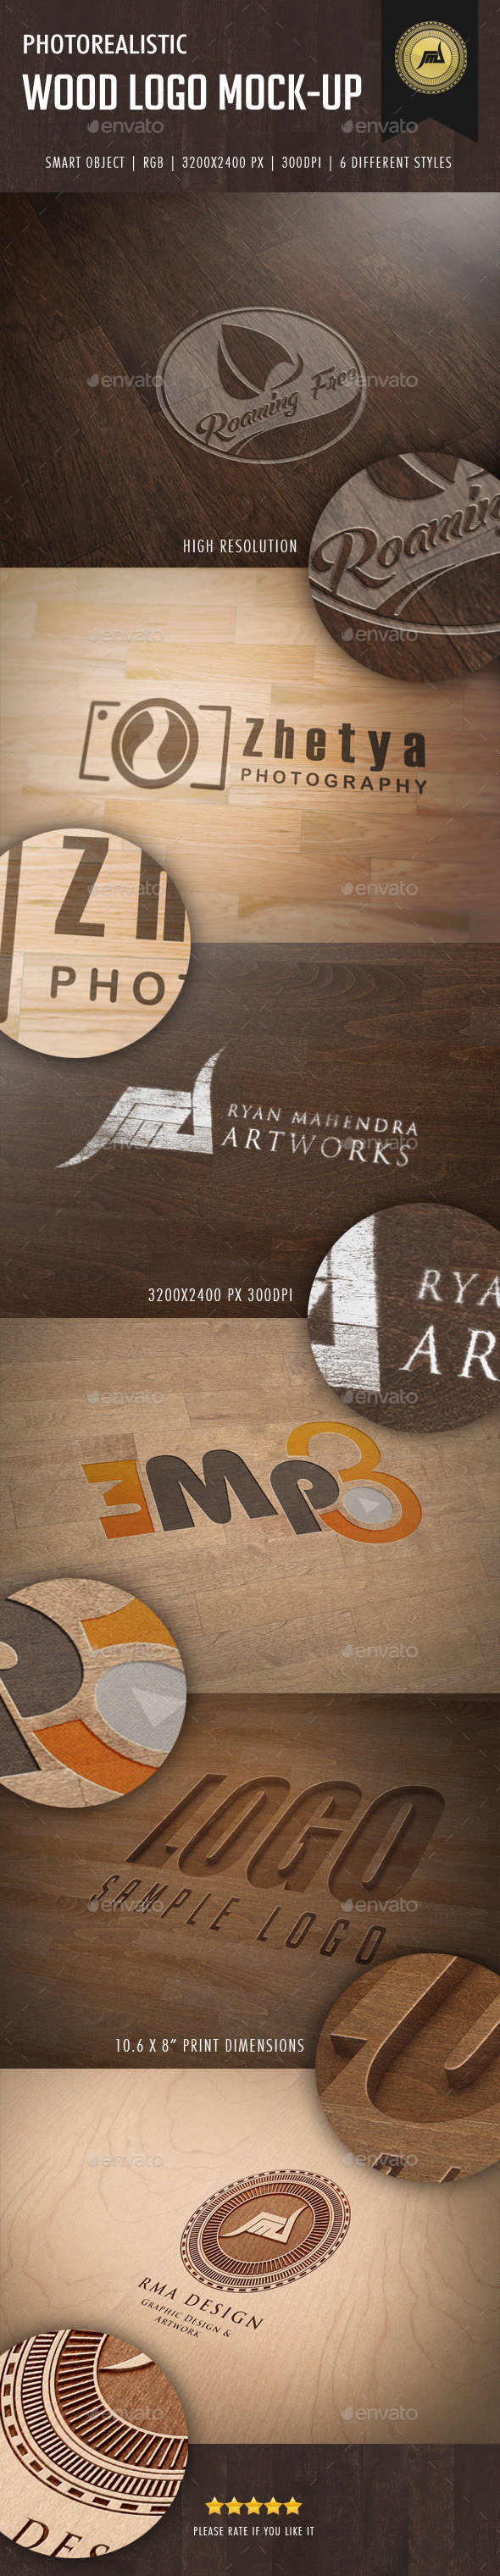 GraphicRiver Photorealistic Wood Logo Mock-Up 11357761